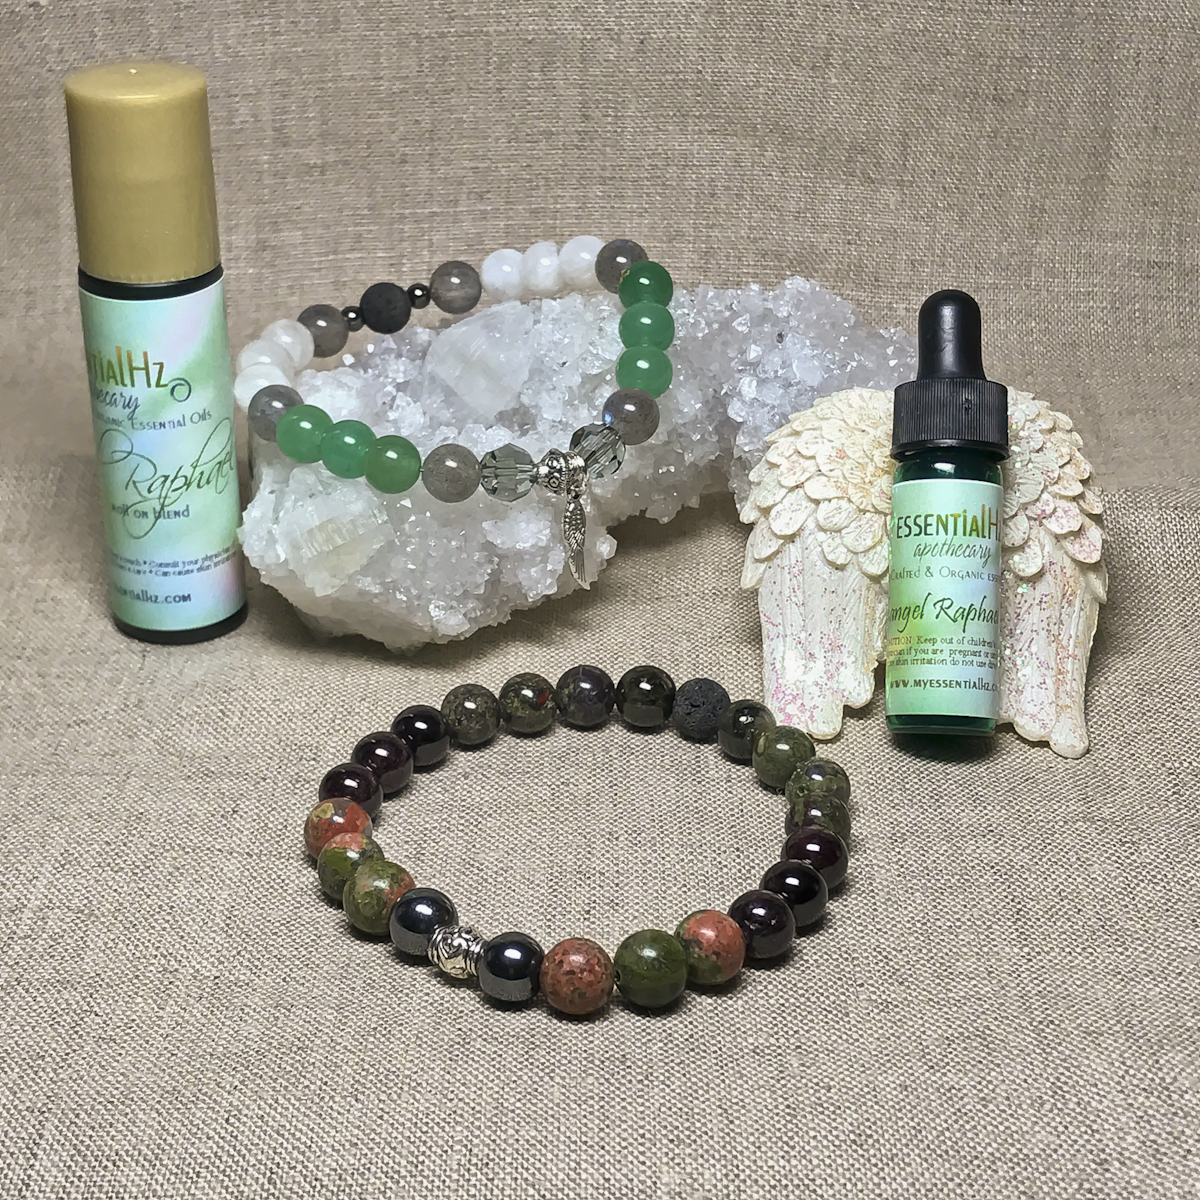 Archangel Raphael Gemstone Crystal Aromatherapy Bracelet & Essential Oil Set